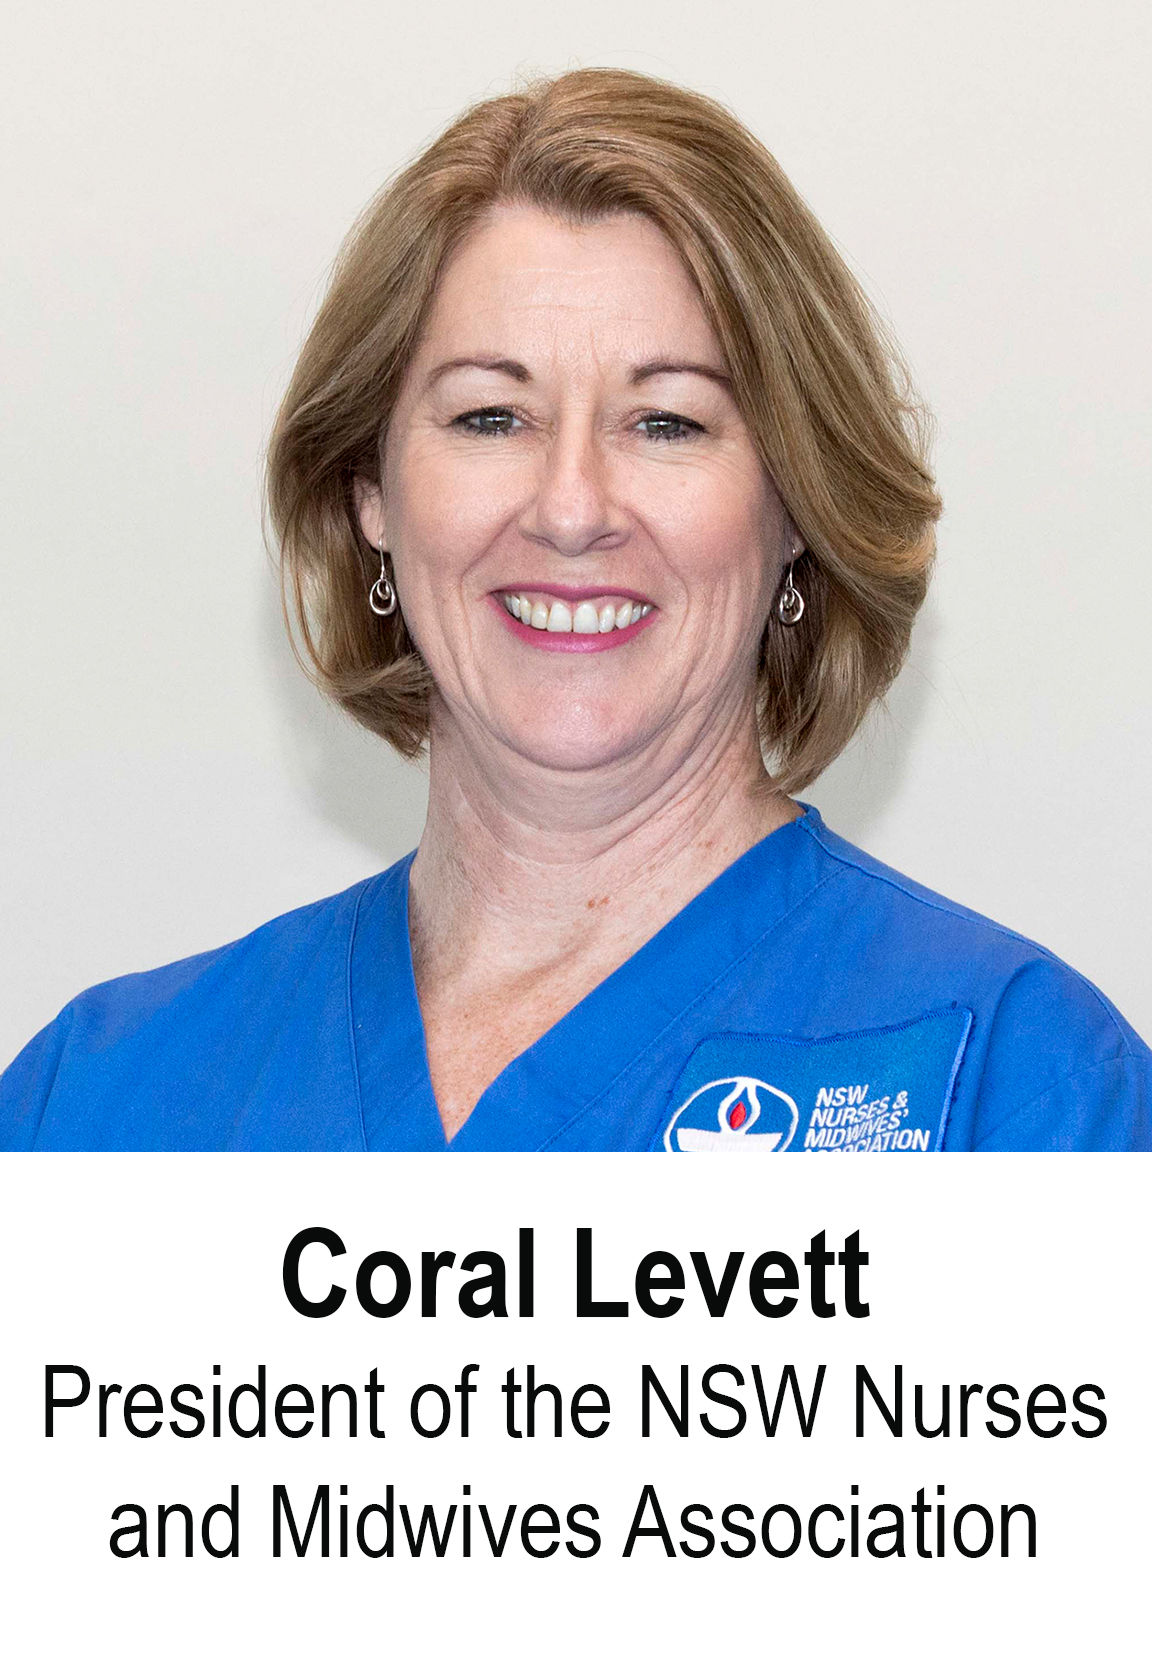 coral_levett_picture_and_text.jpg